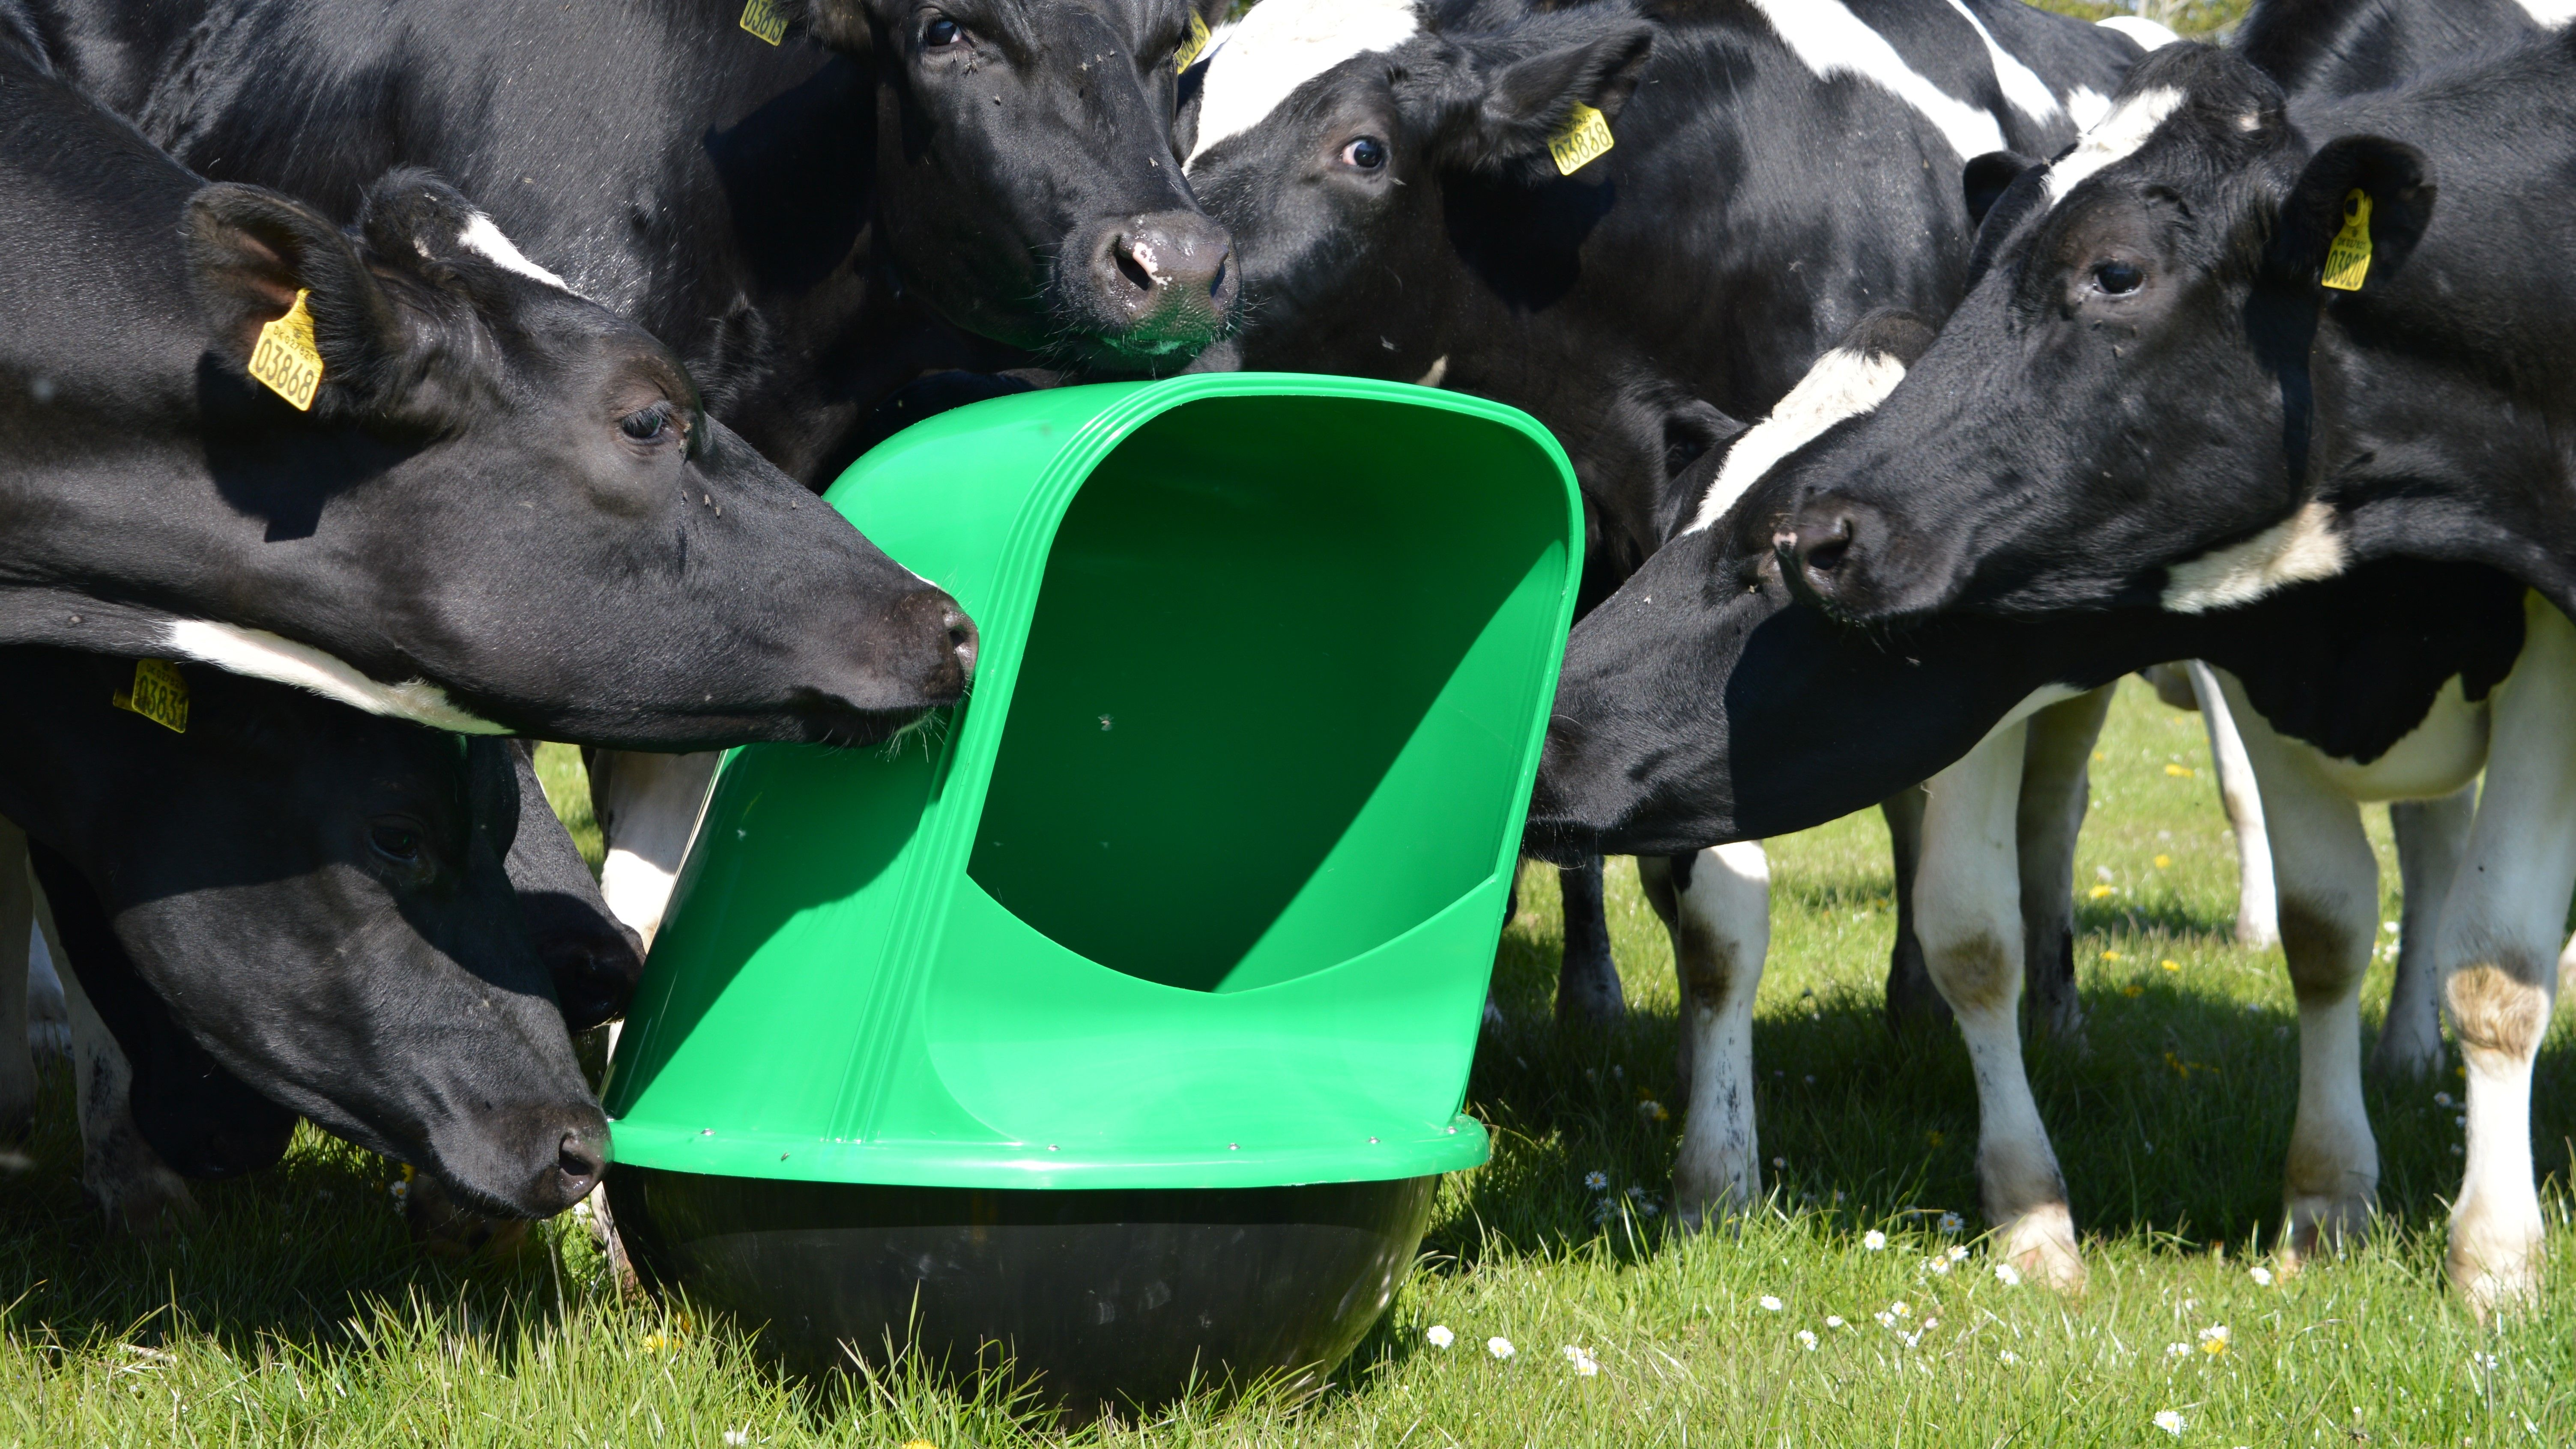 Pin On Microfeeder Products For Grazing Animals